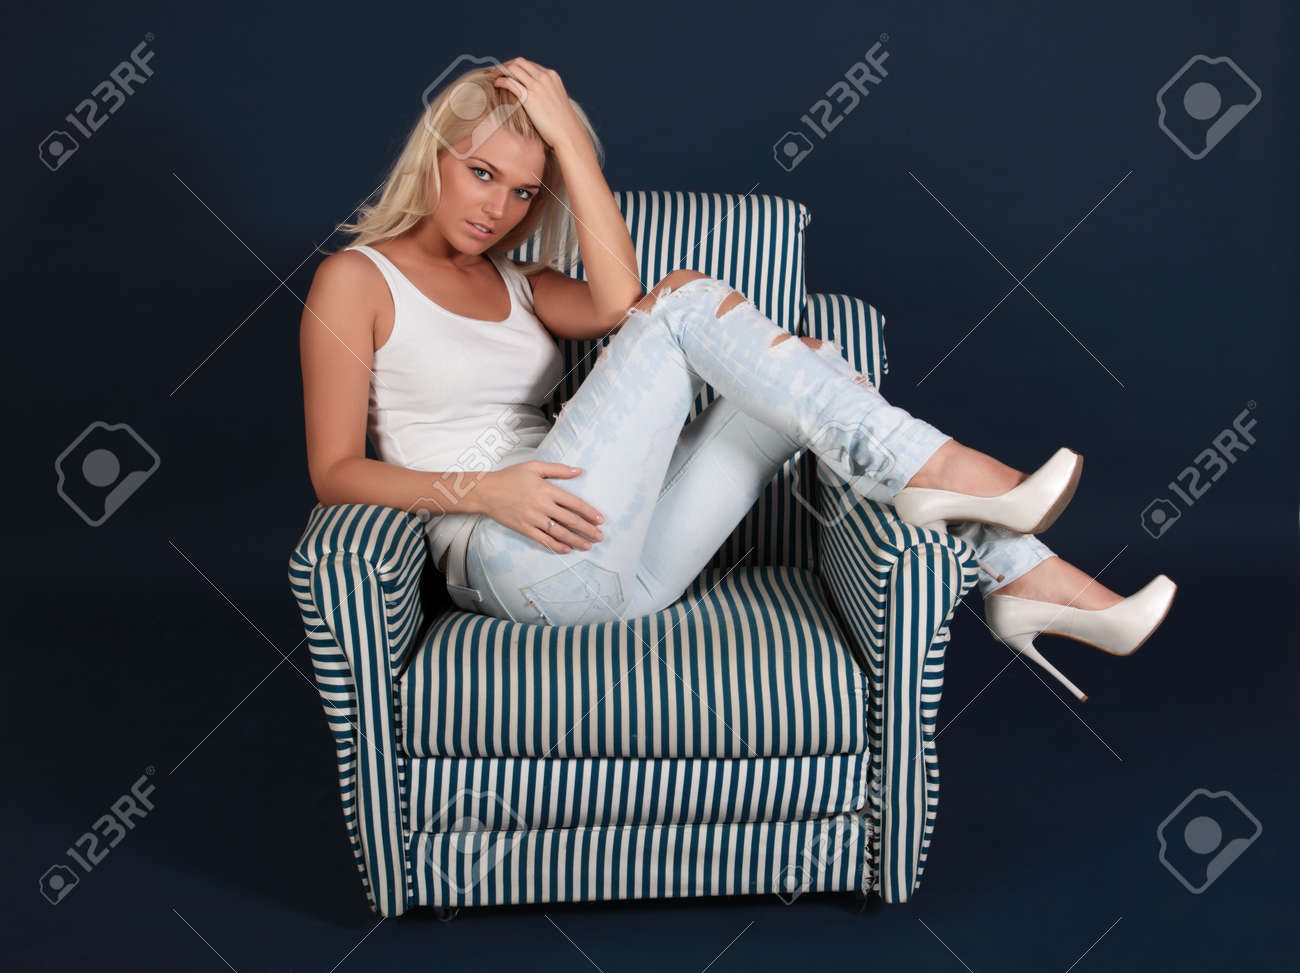 Jeans Sessel Stock Photo